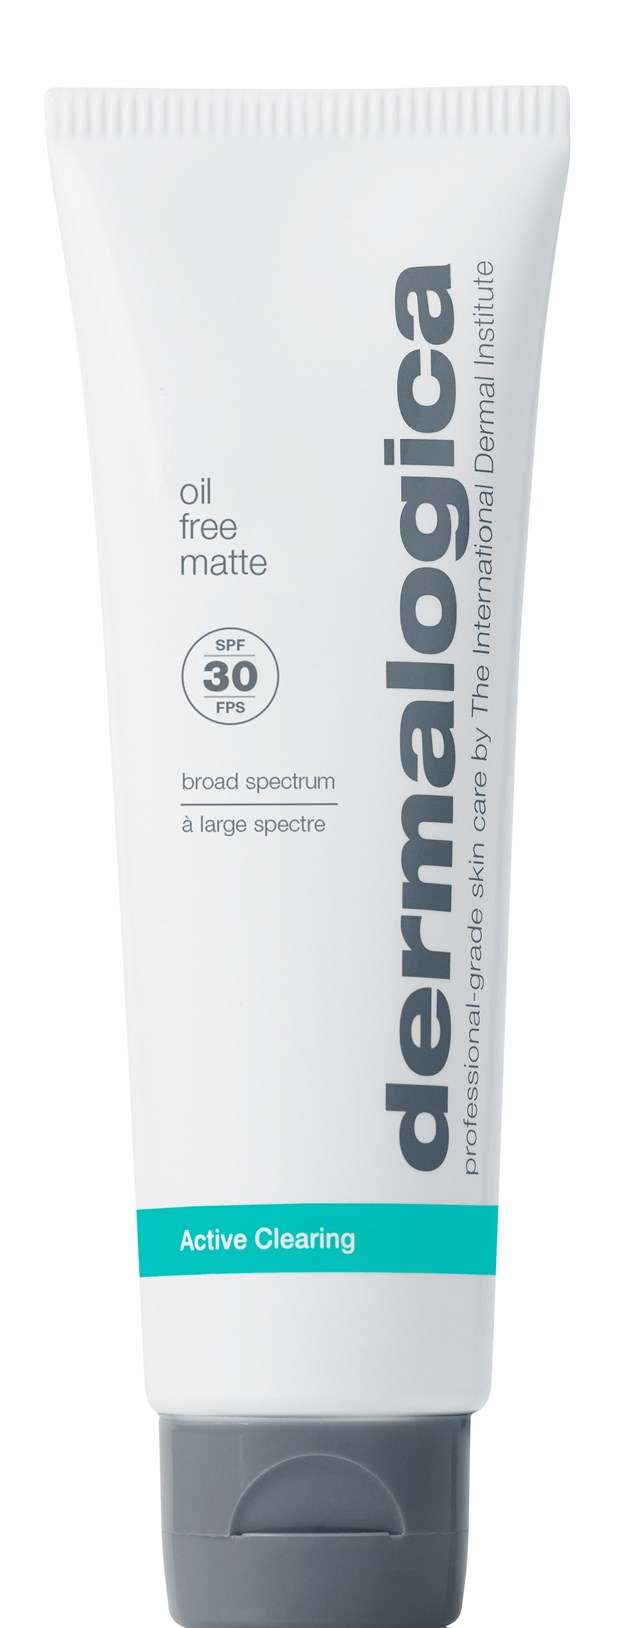 Active Clearing Oil Free Matte SPF30